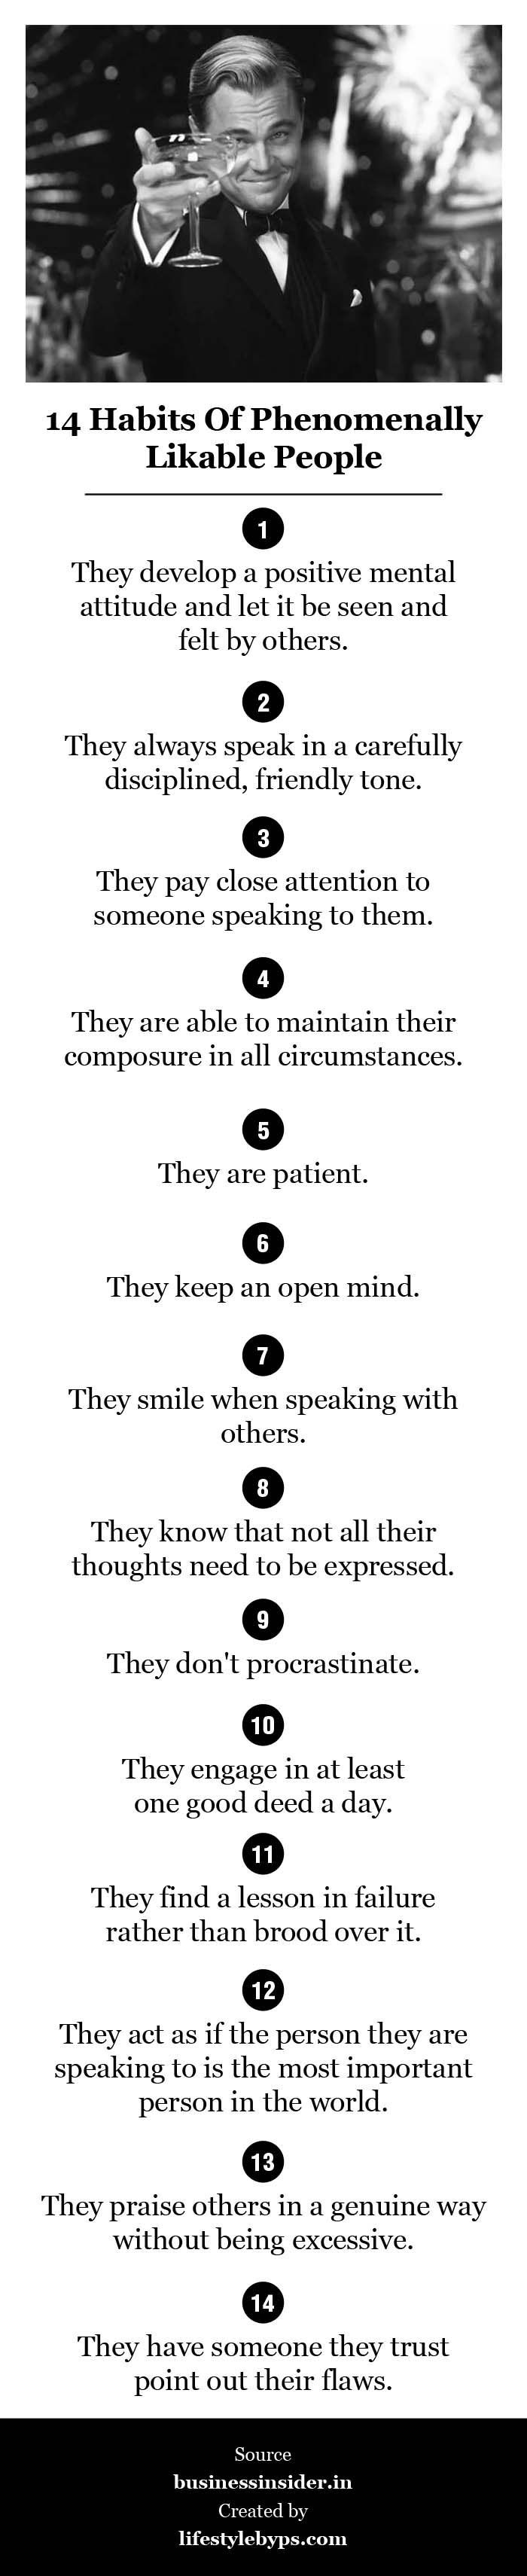 14 Most Likeable Personality Traits